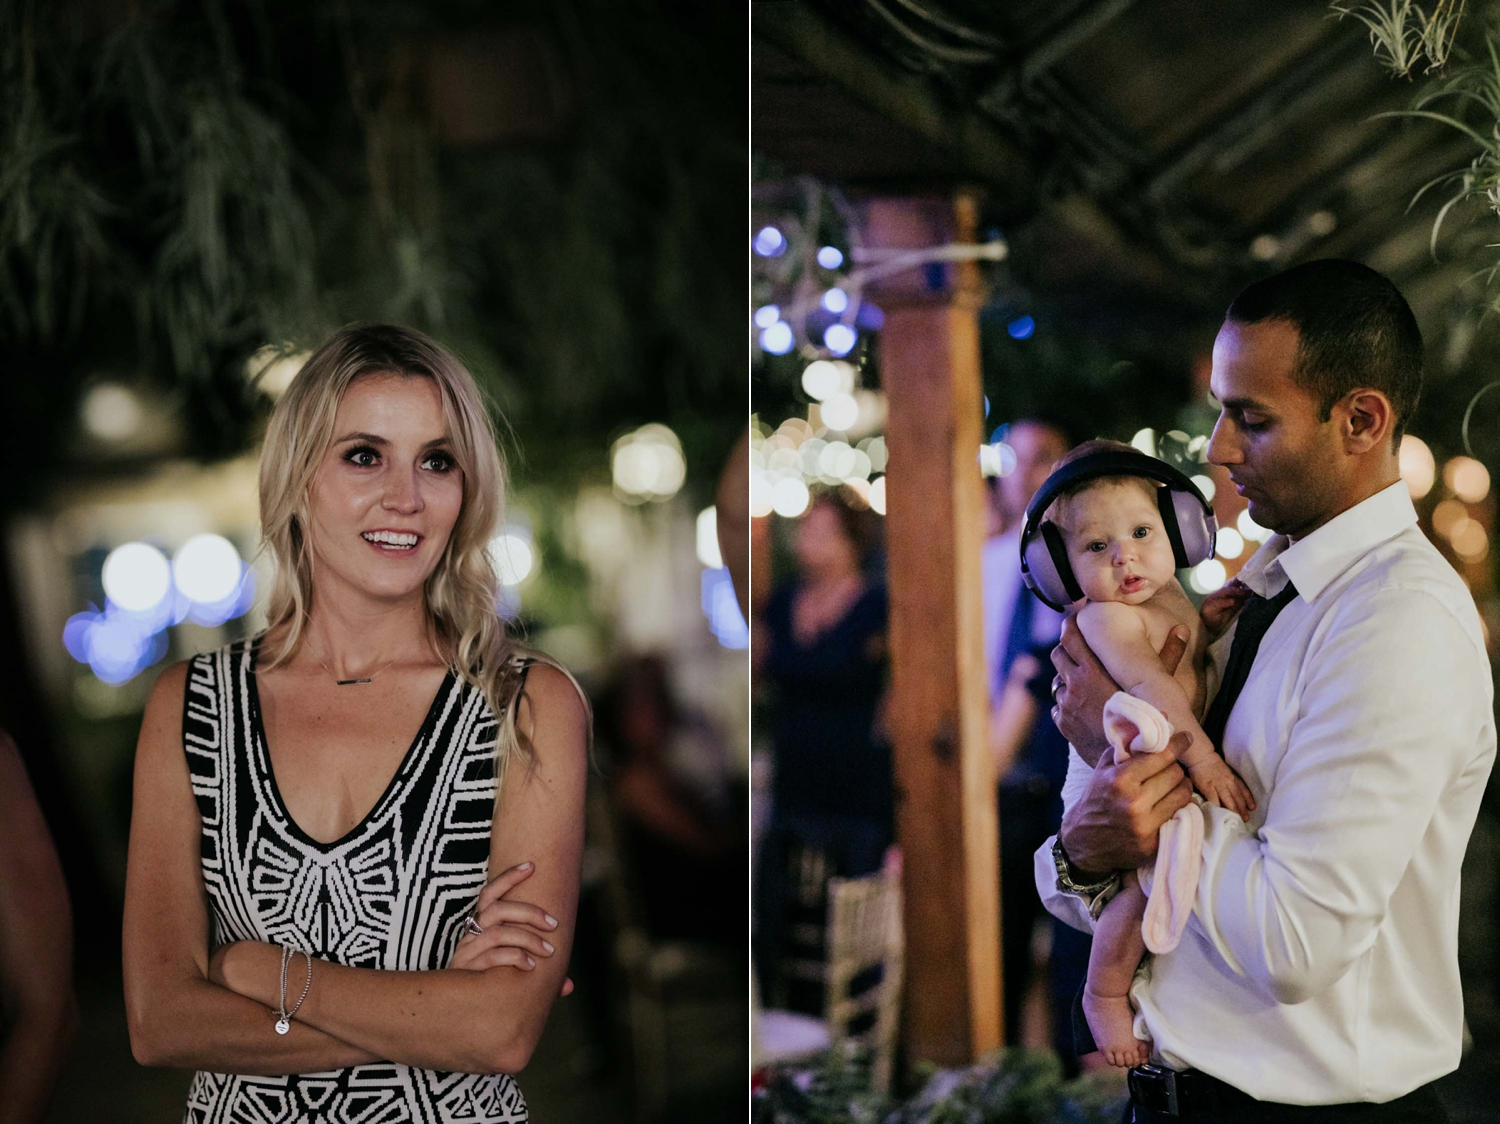 Clever purple earphones designed to protect babies' ears from loud noises during wedding and music concerts